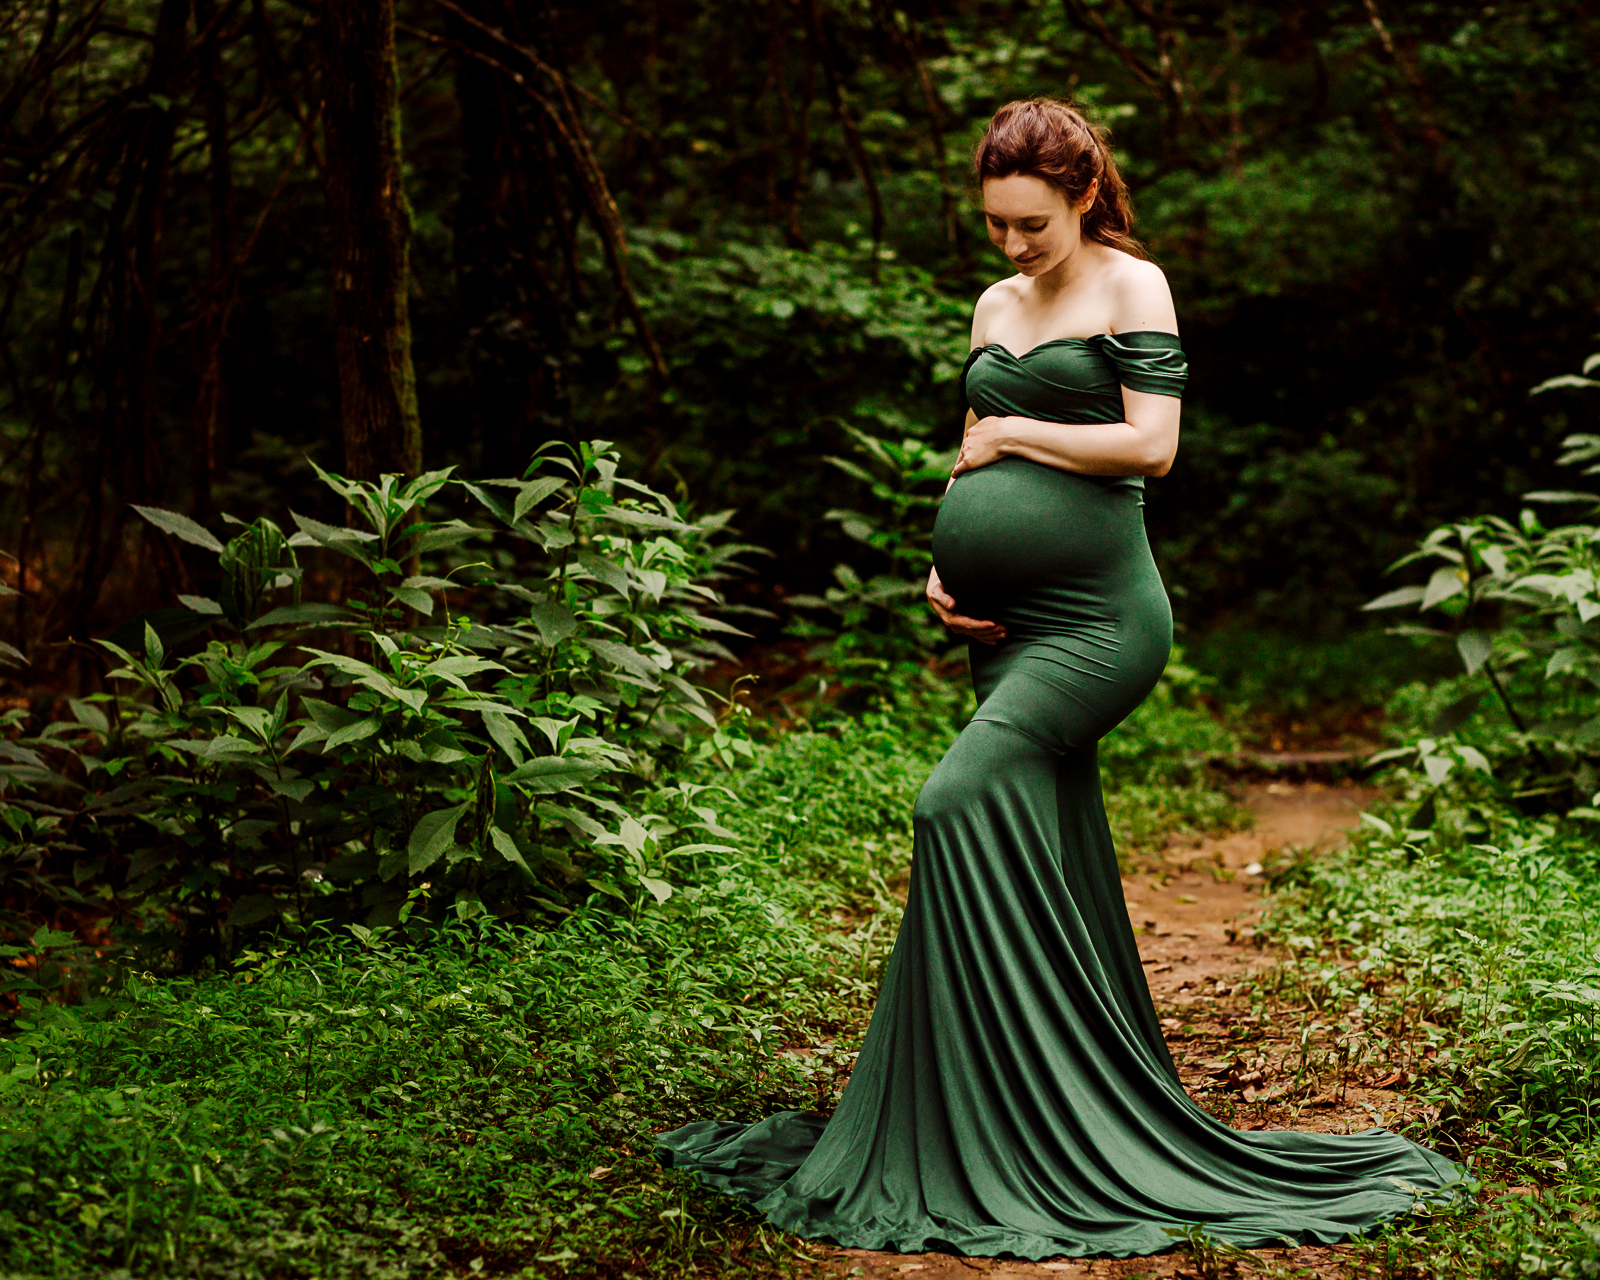 pregnant woman standing in wooded area while cradling her baby belly